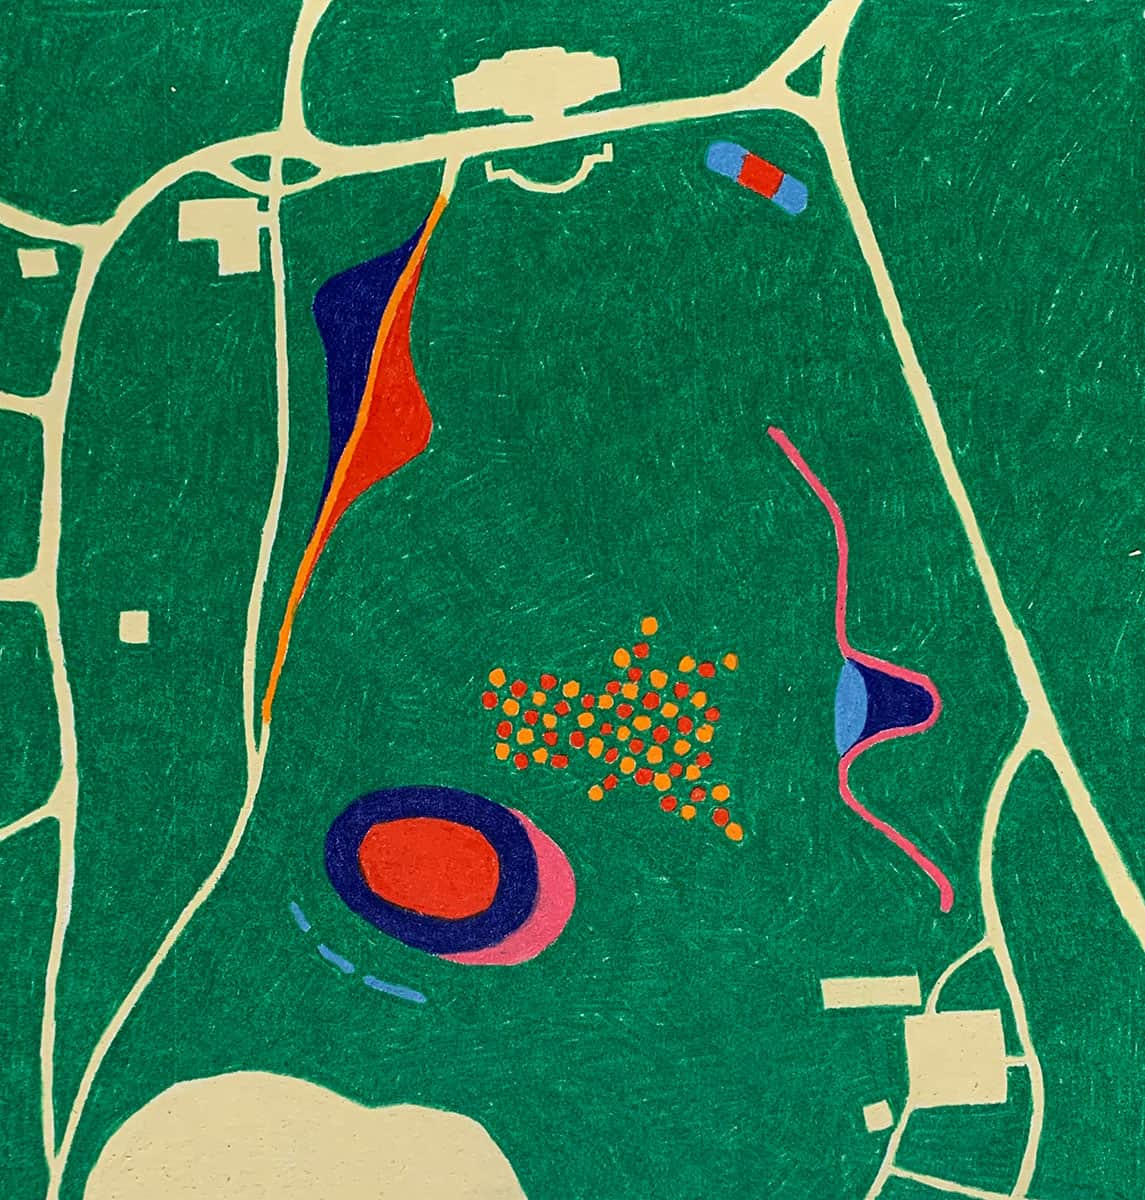 colorful drawing resembling a map, mostly green with tan roads around the edges and brightly colorful abstract shapes in the center